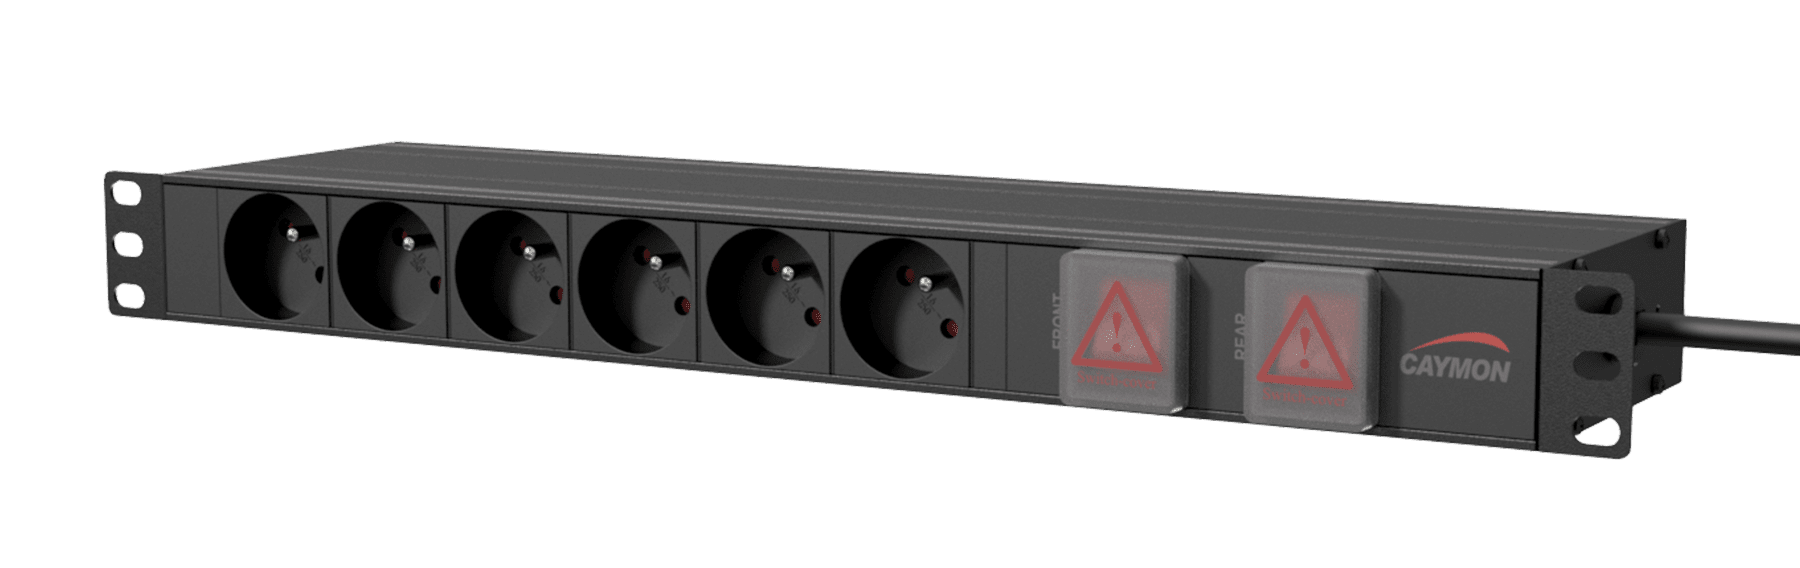 "PSR269FS - 19"" power distribution unit - French 6 x front sockets + 9 x rear sockets - Double switched"